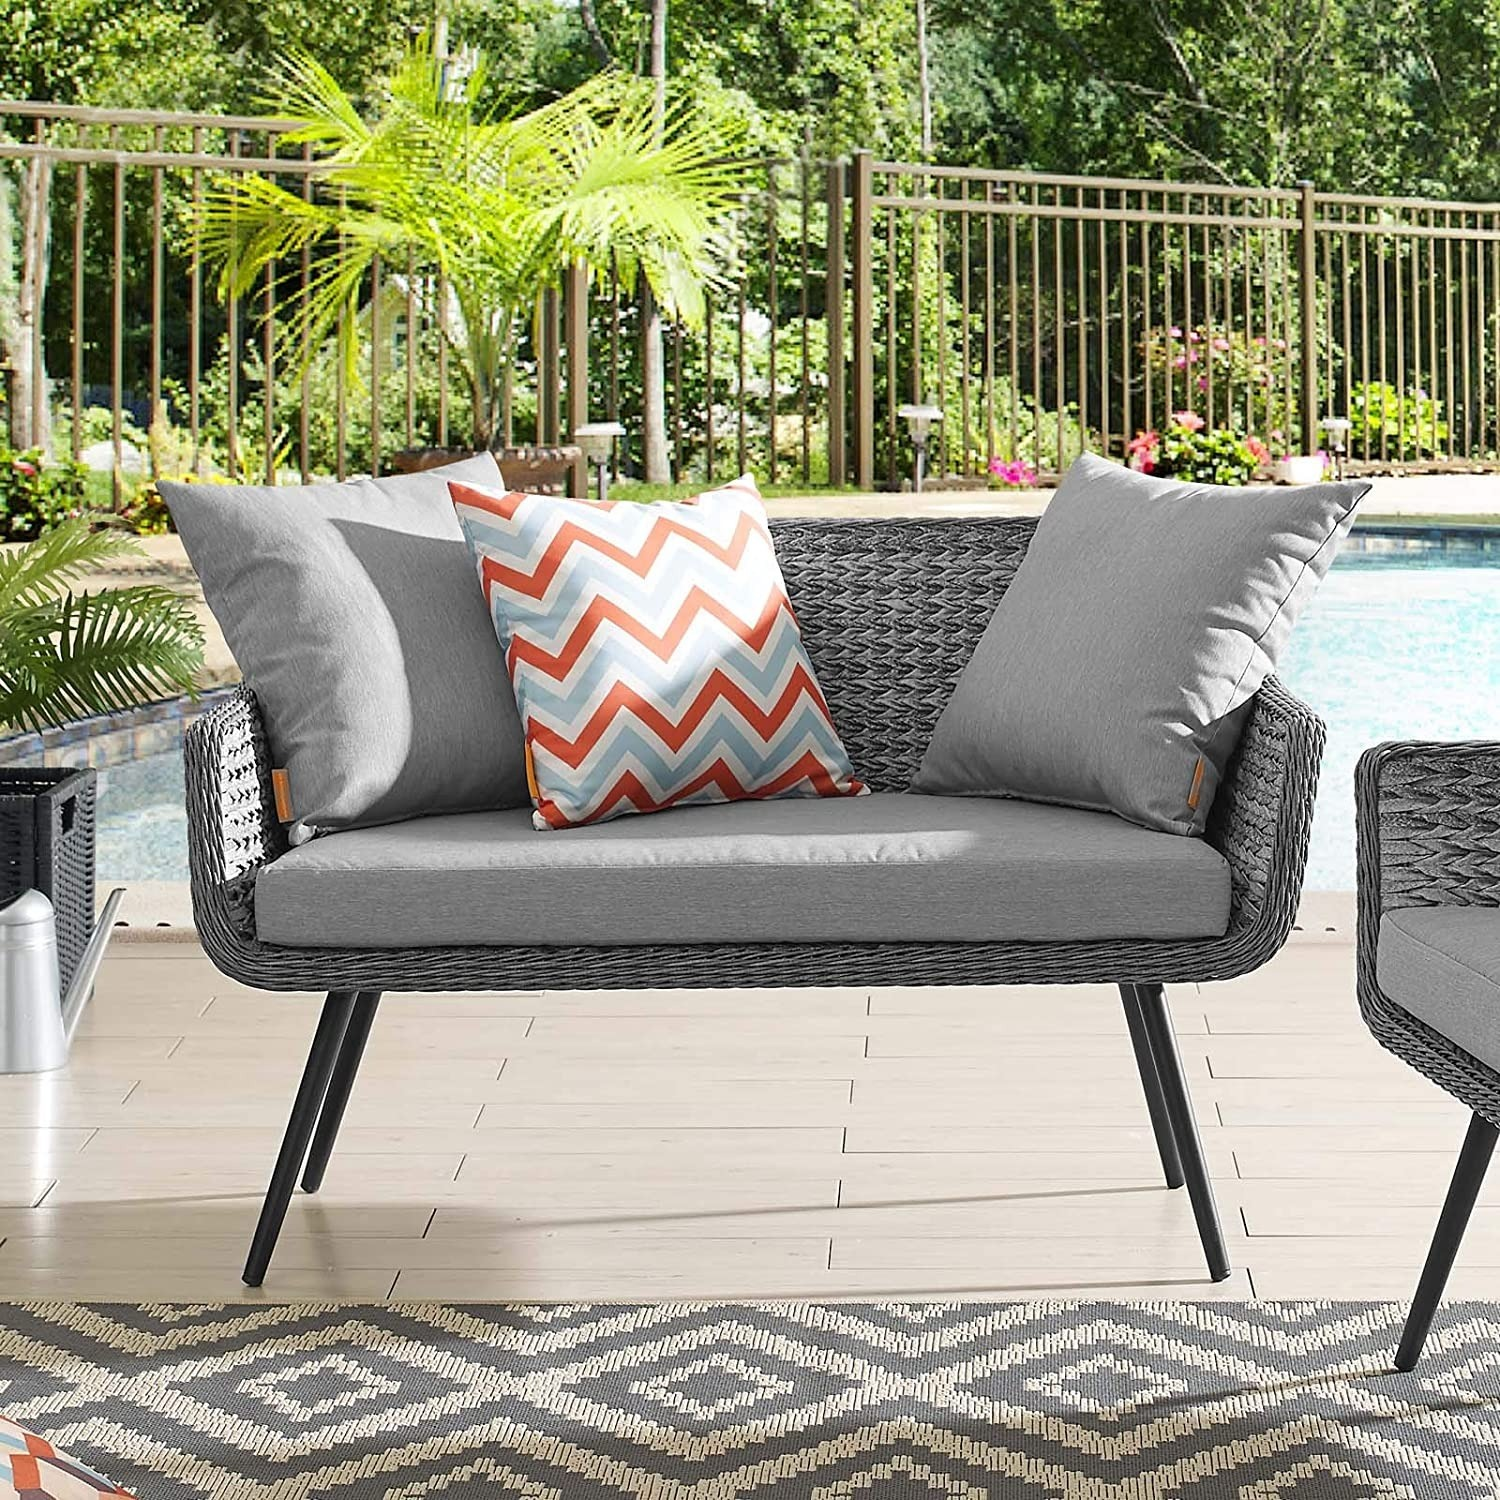 Outdoor Loveseat In Gray-On-Gray Tone Finish - image-4